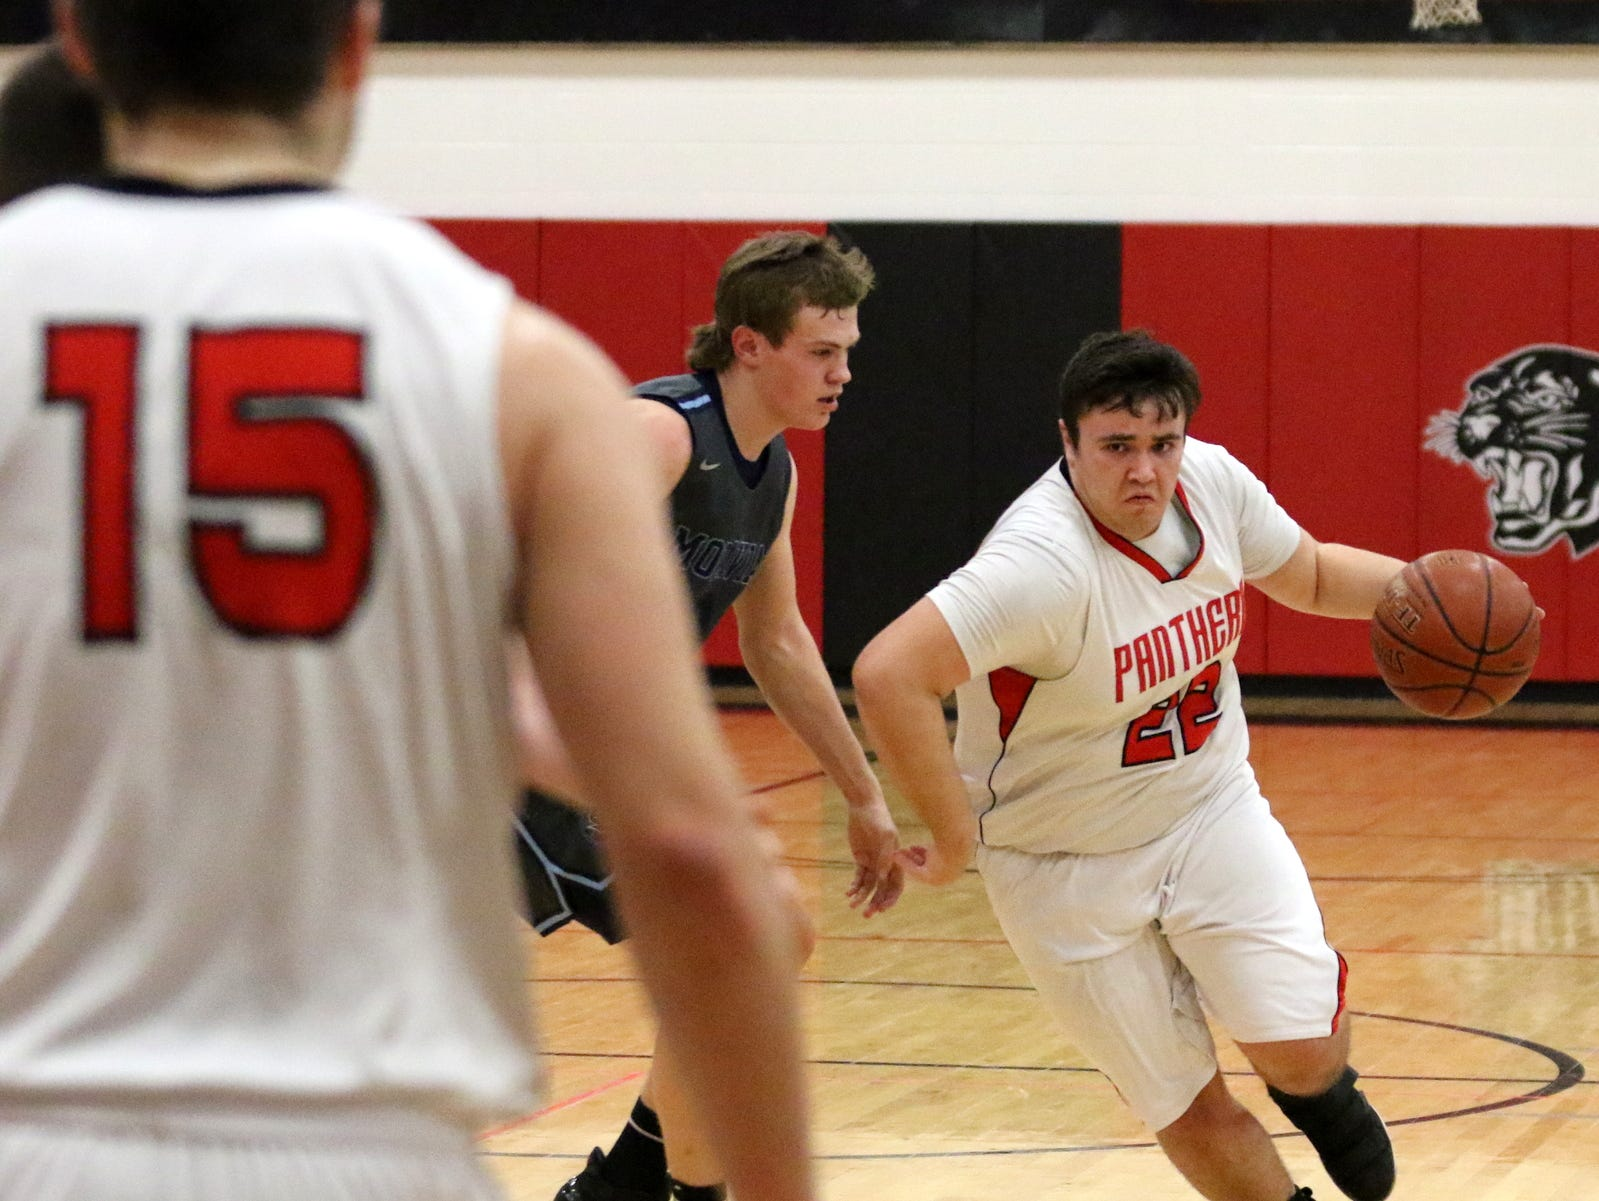 Spencer-Van Etten was a 68-63 winner over Moravia in boys basketball Feb. 8, 2019 at Spencer-Van Etten High School.